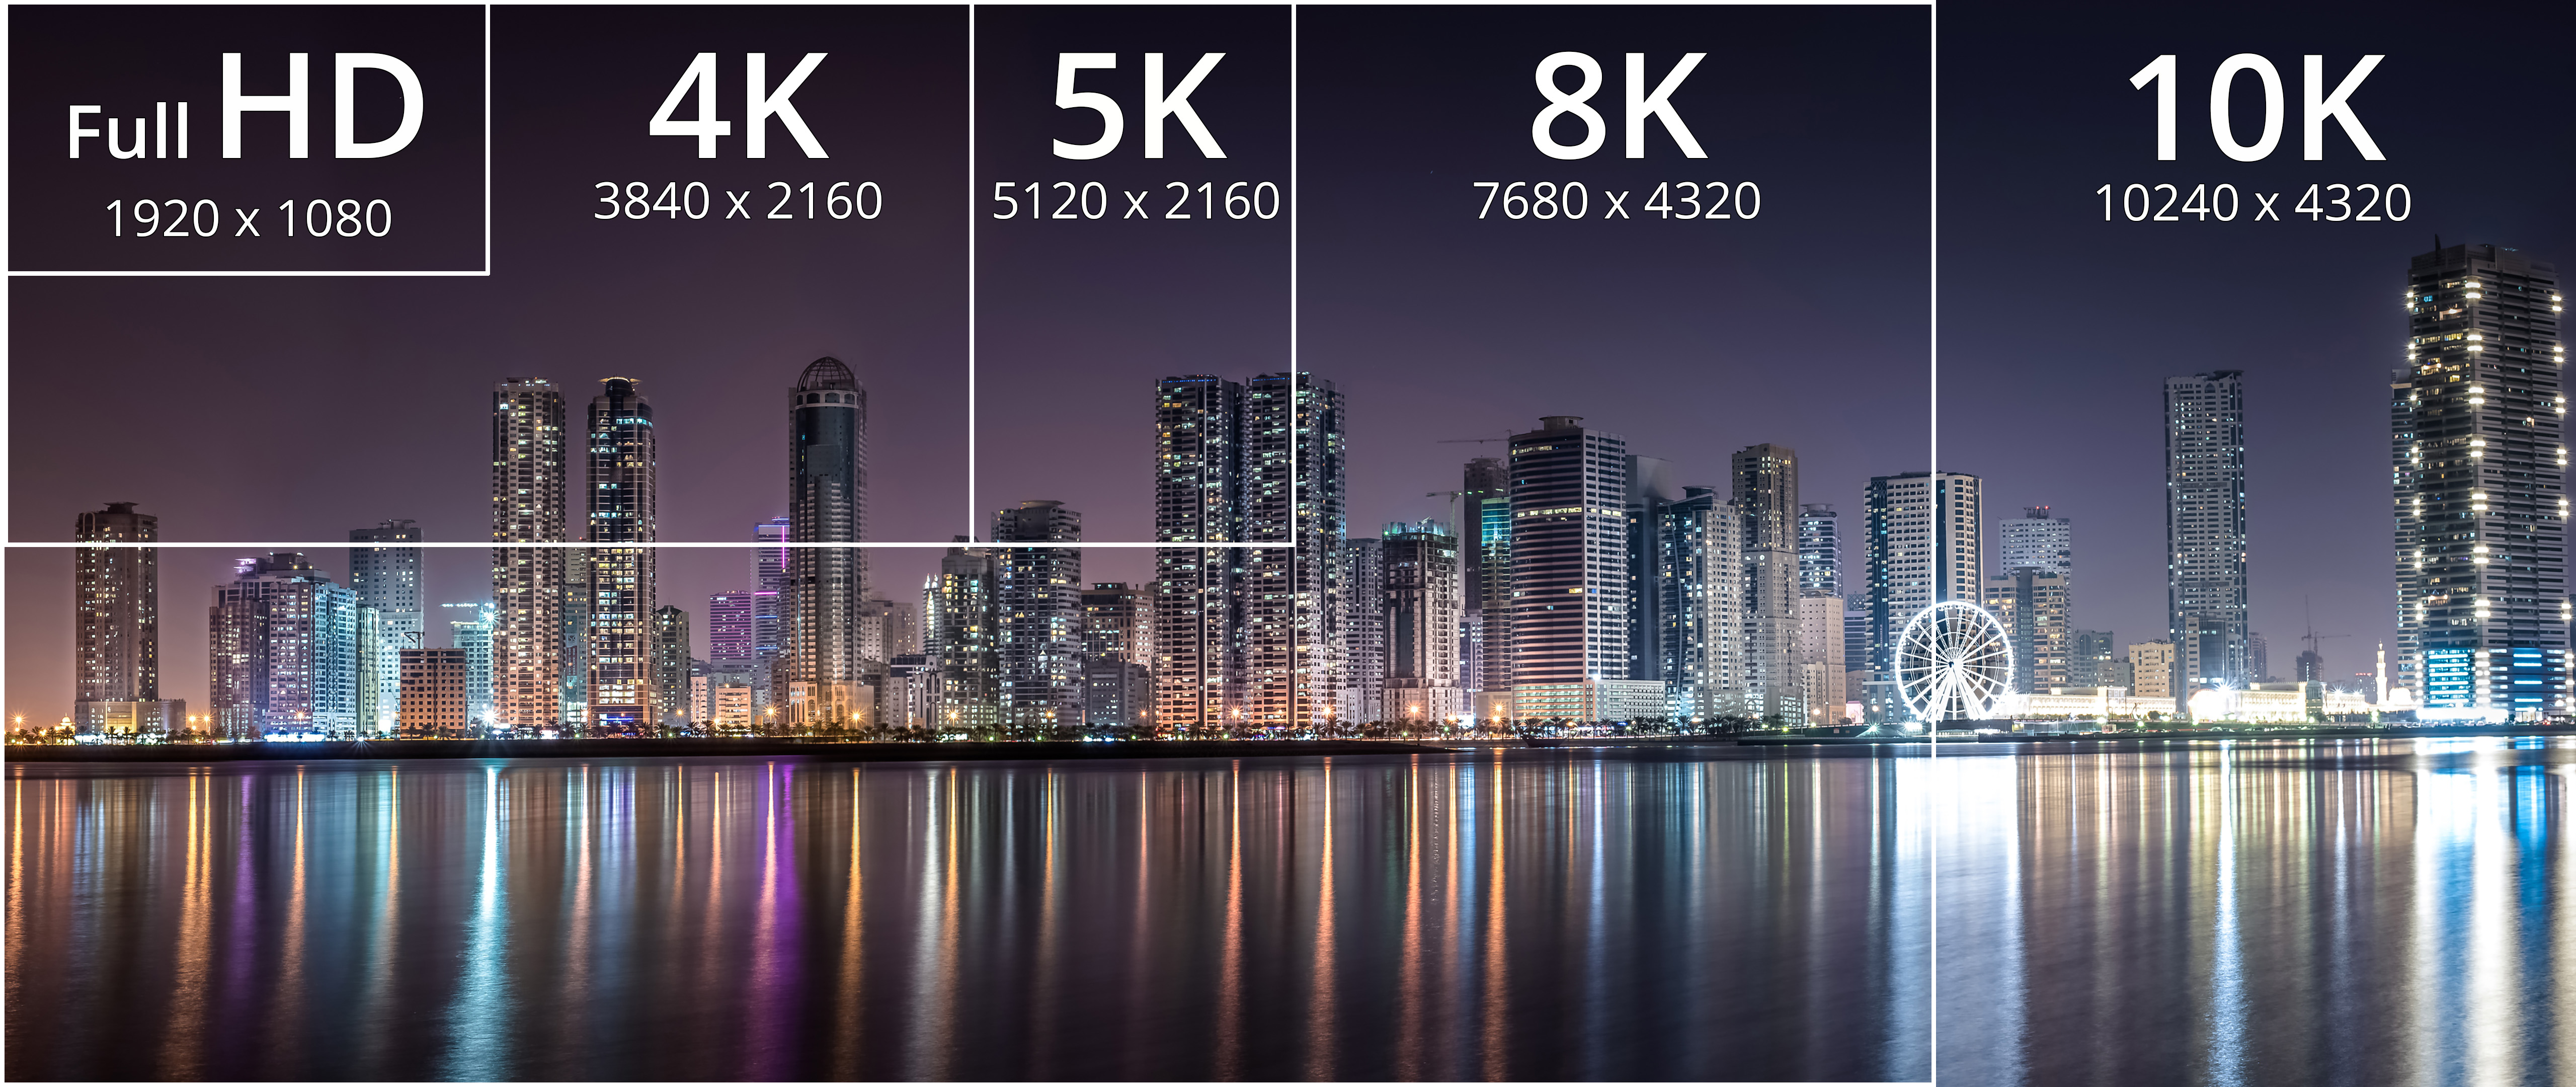 Throw That New 4K Tv Into The Garbage -- 10K Is Here -3930